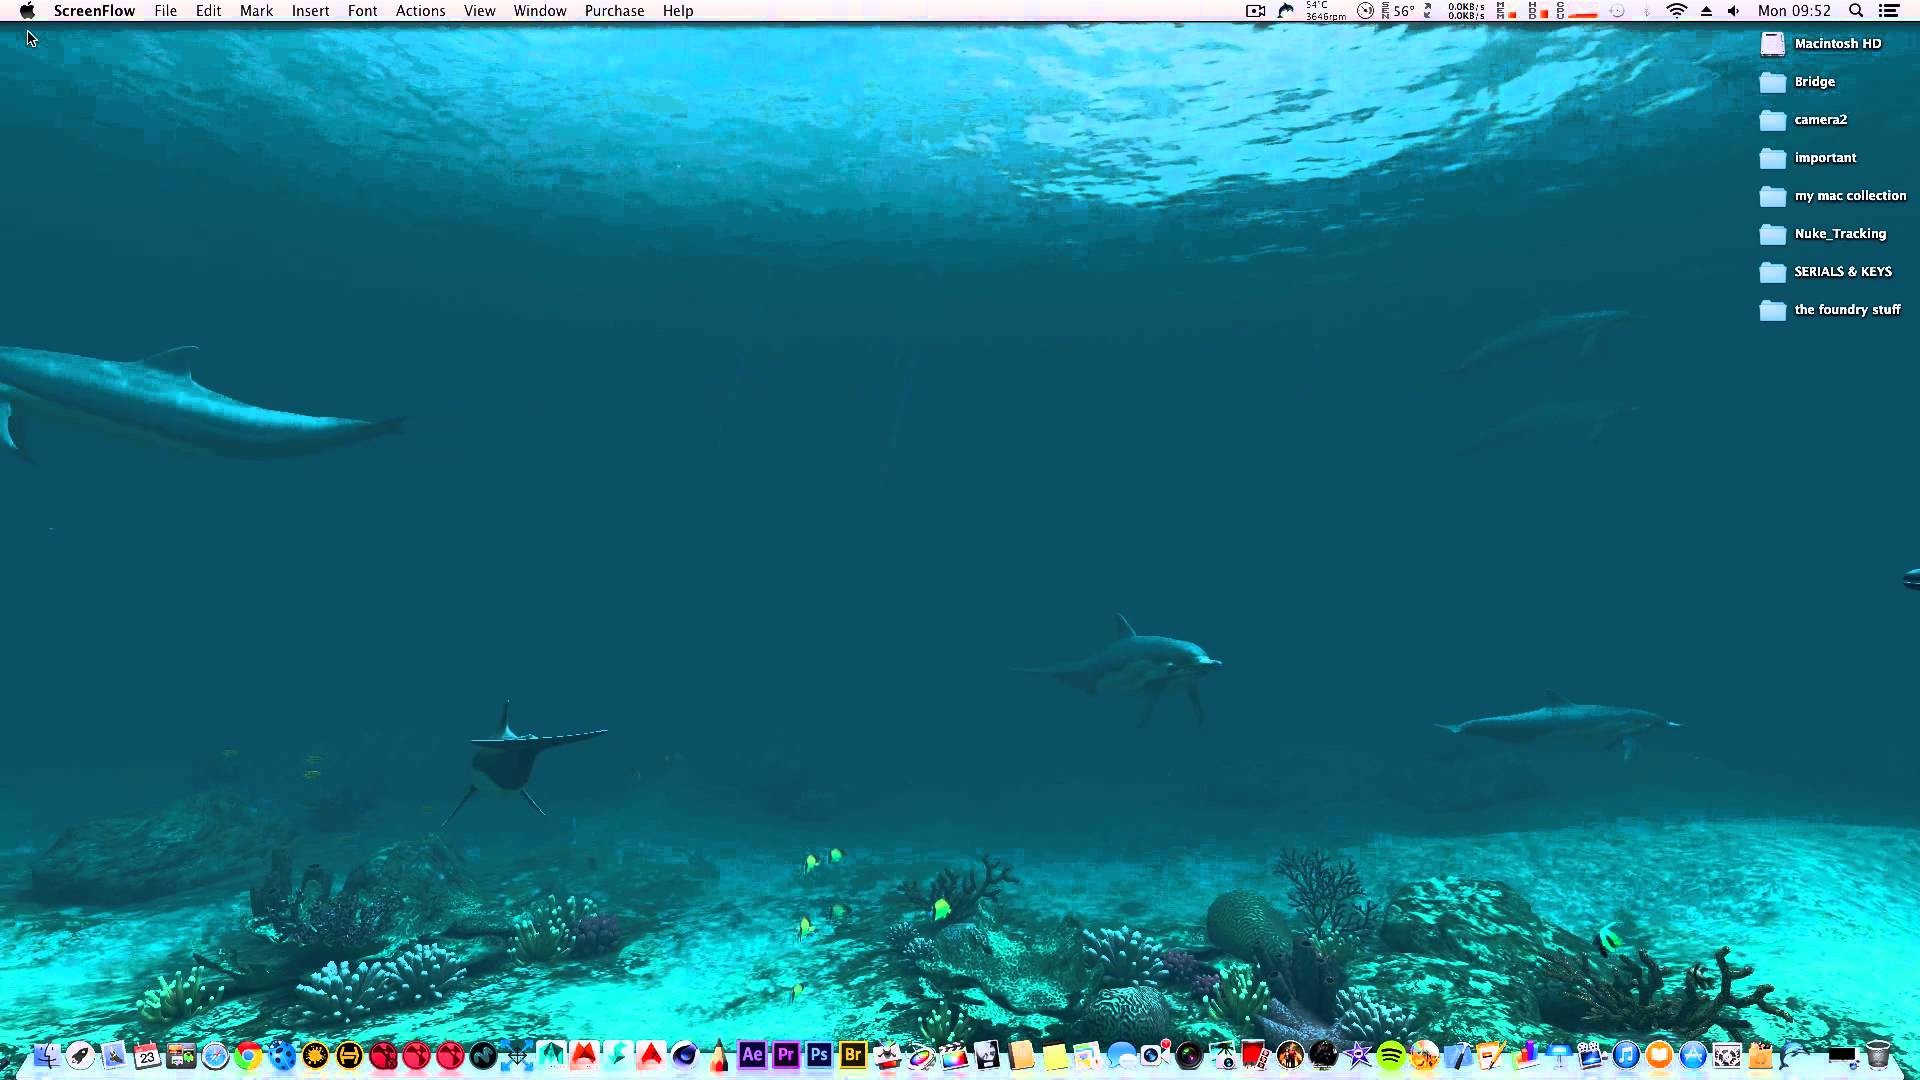 Animated Wallpaper For Mac 53 Images